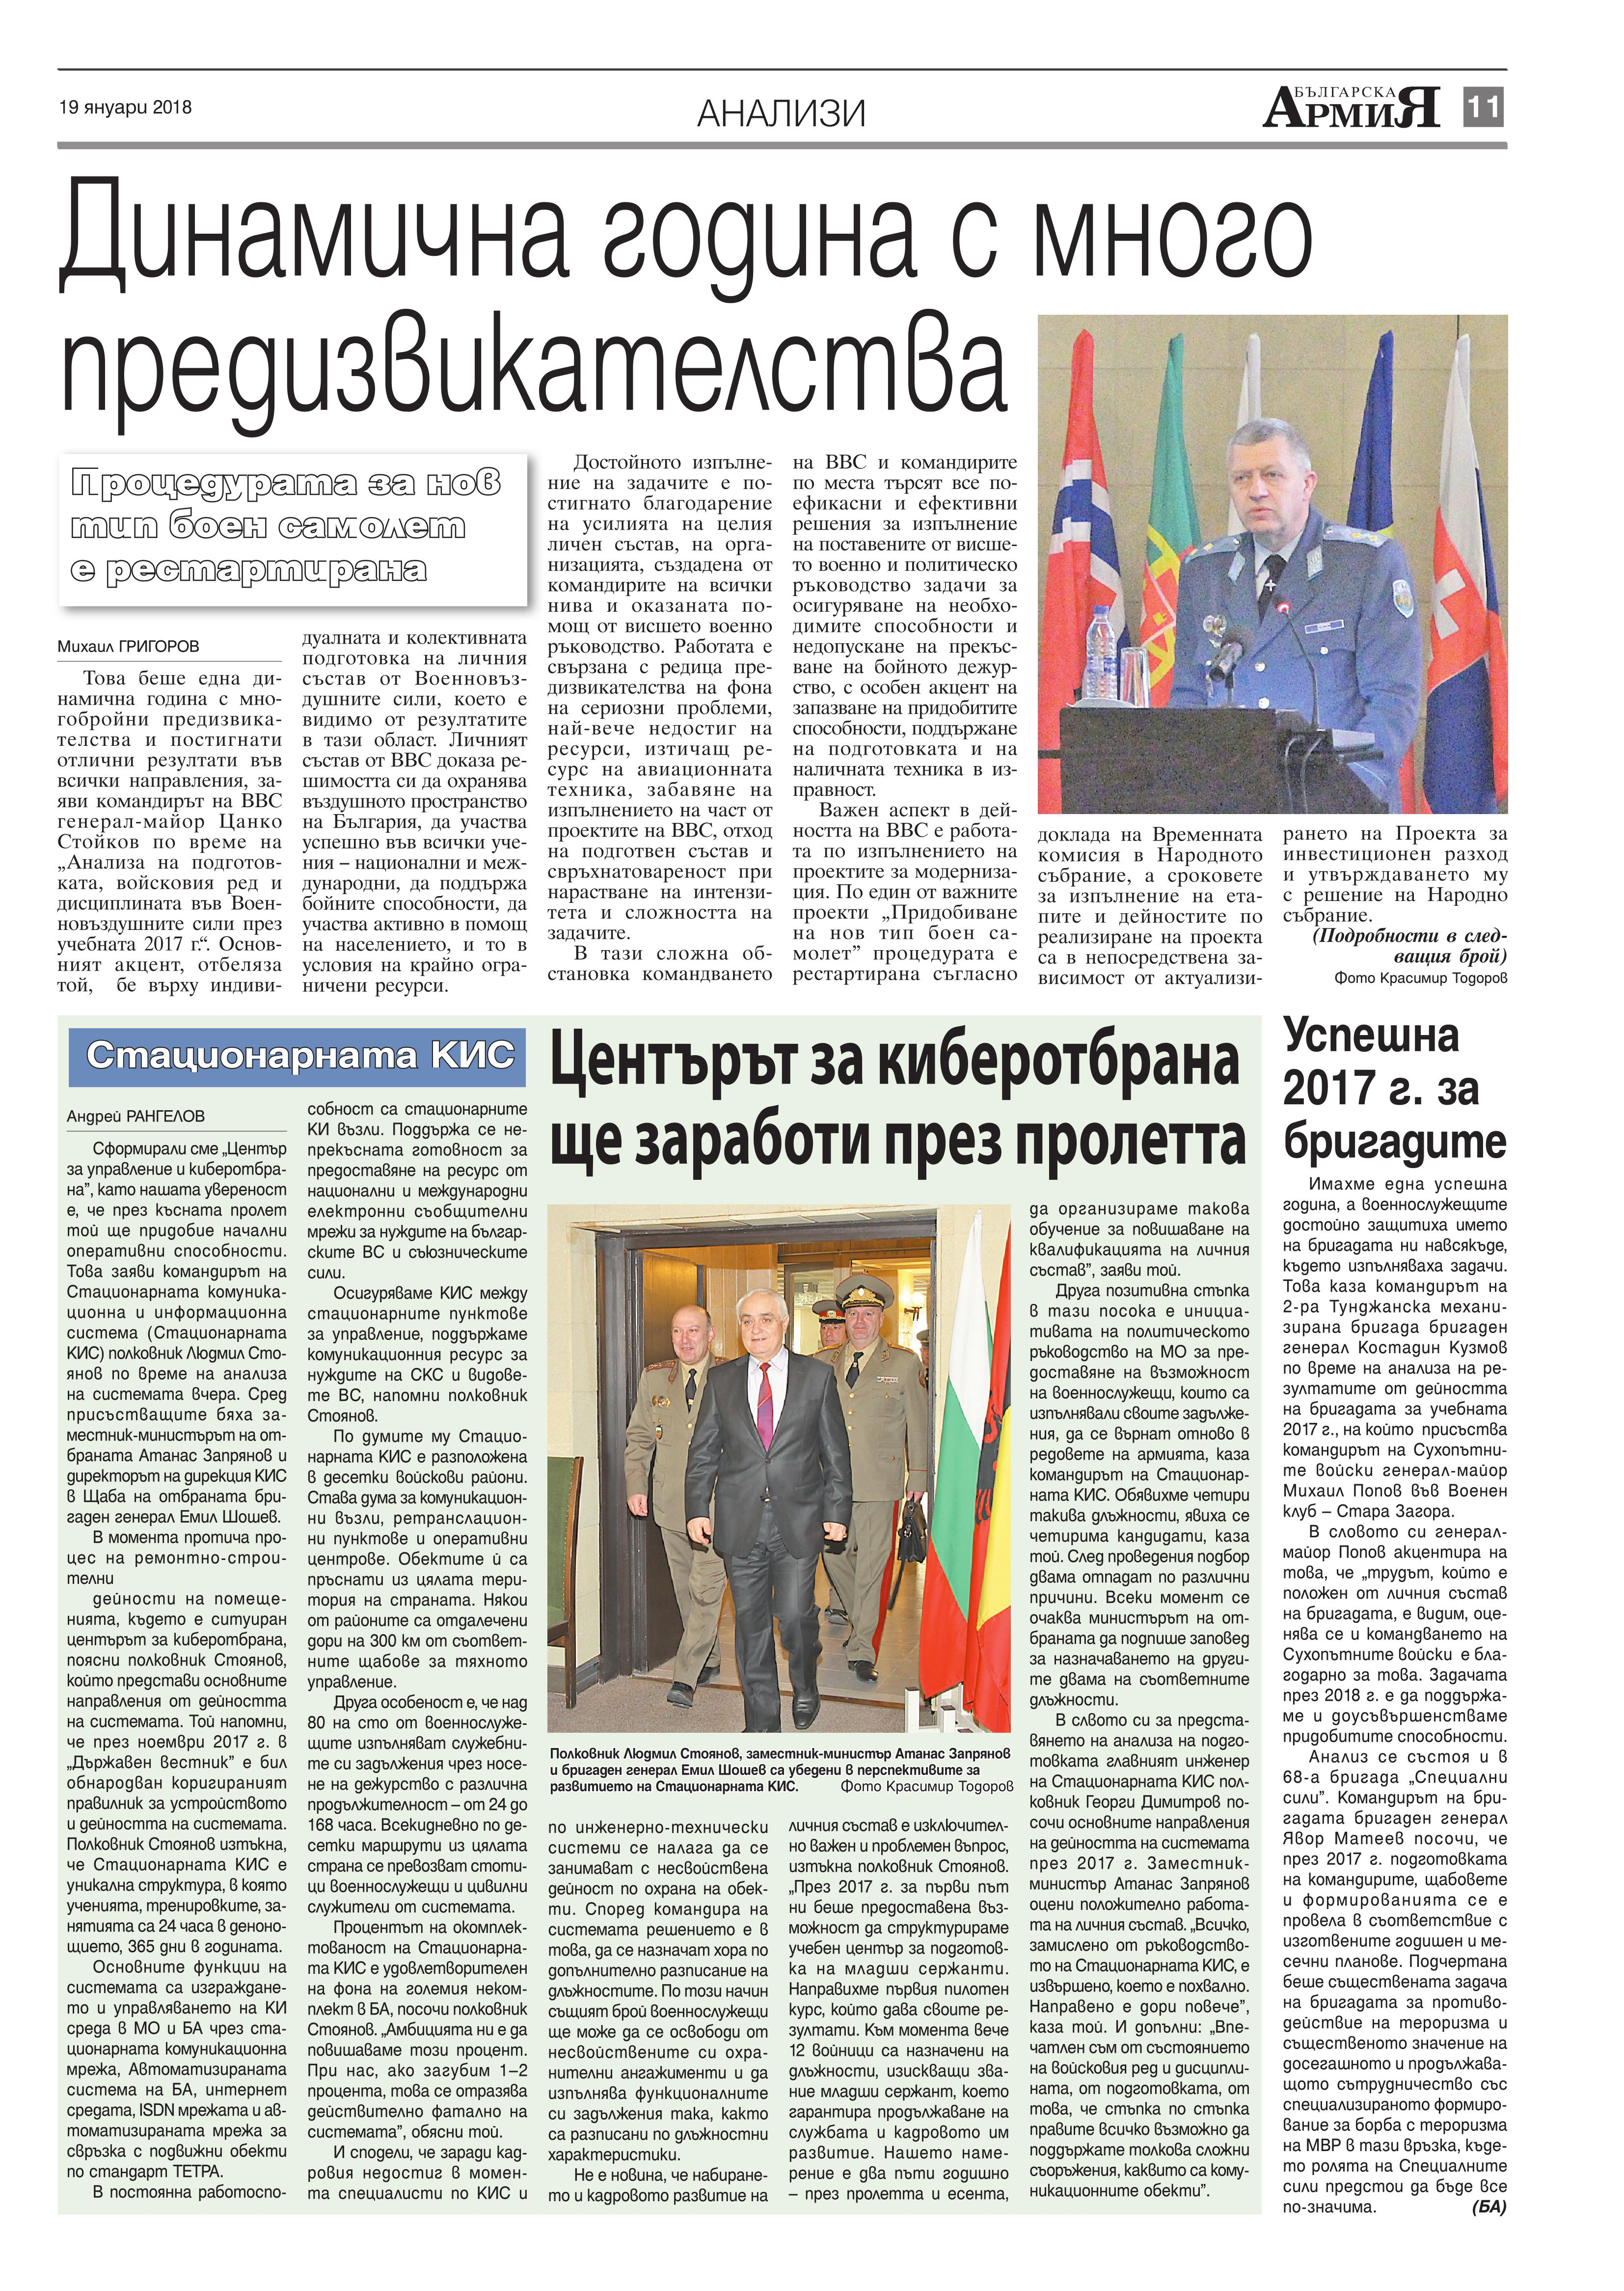 http://armymedia.bg/wp-content/uploads/2015/06/11.page1_-37.jpg